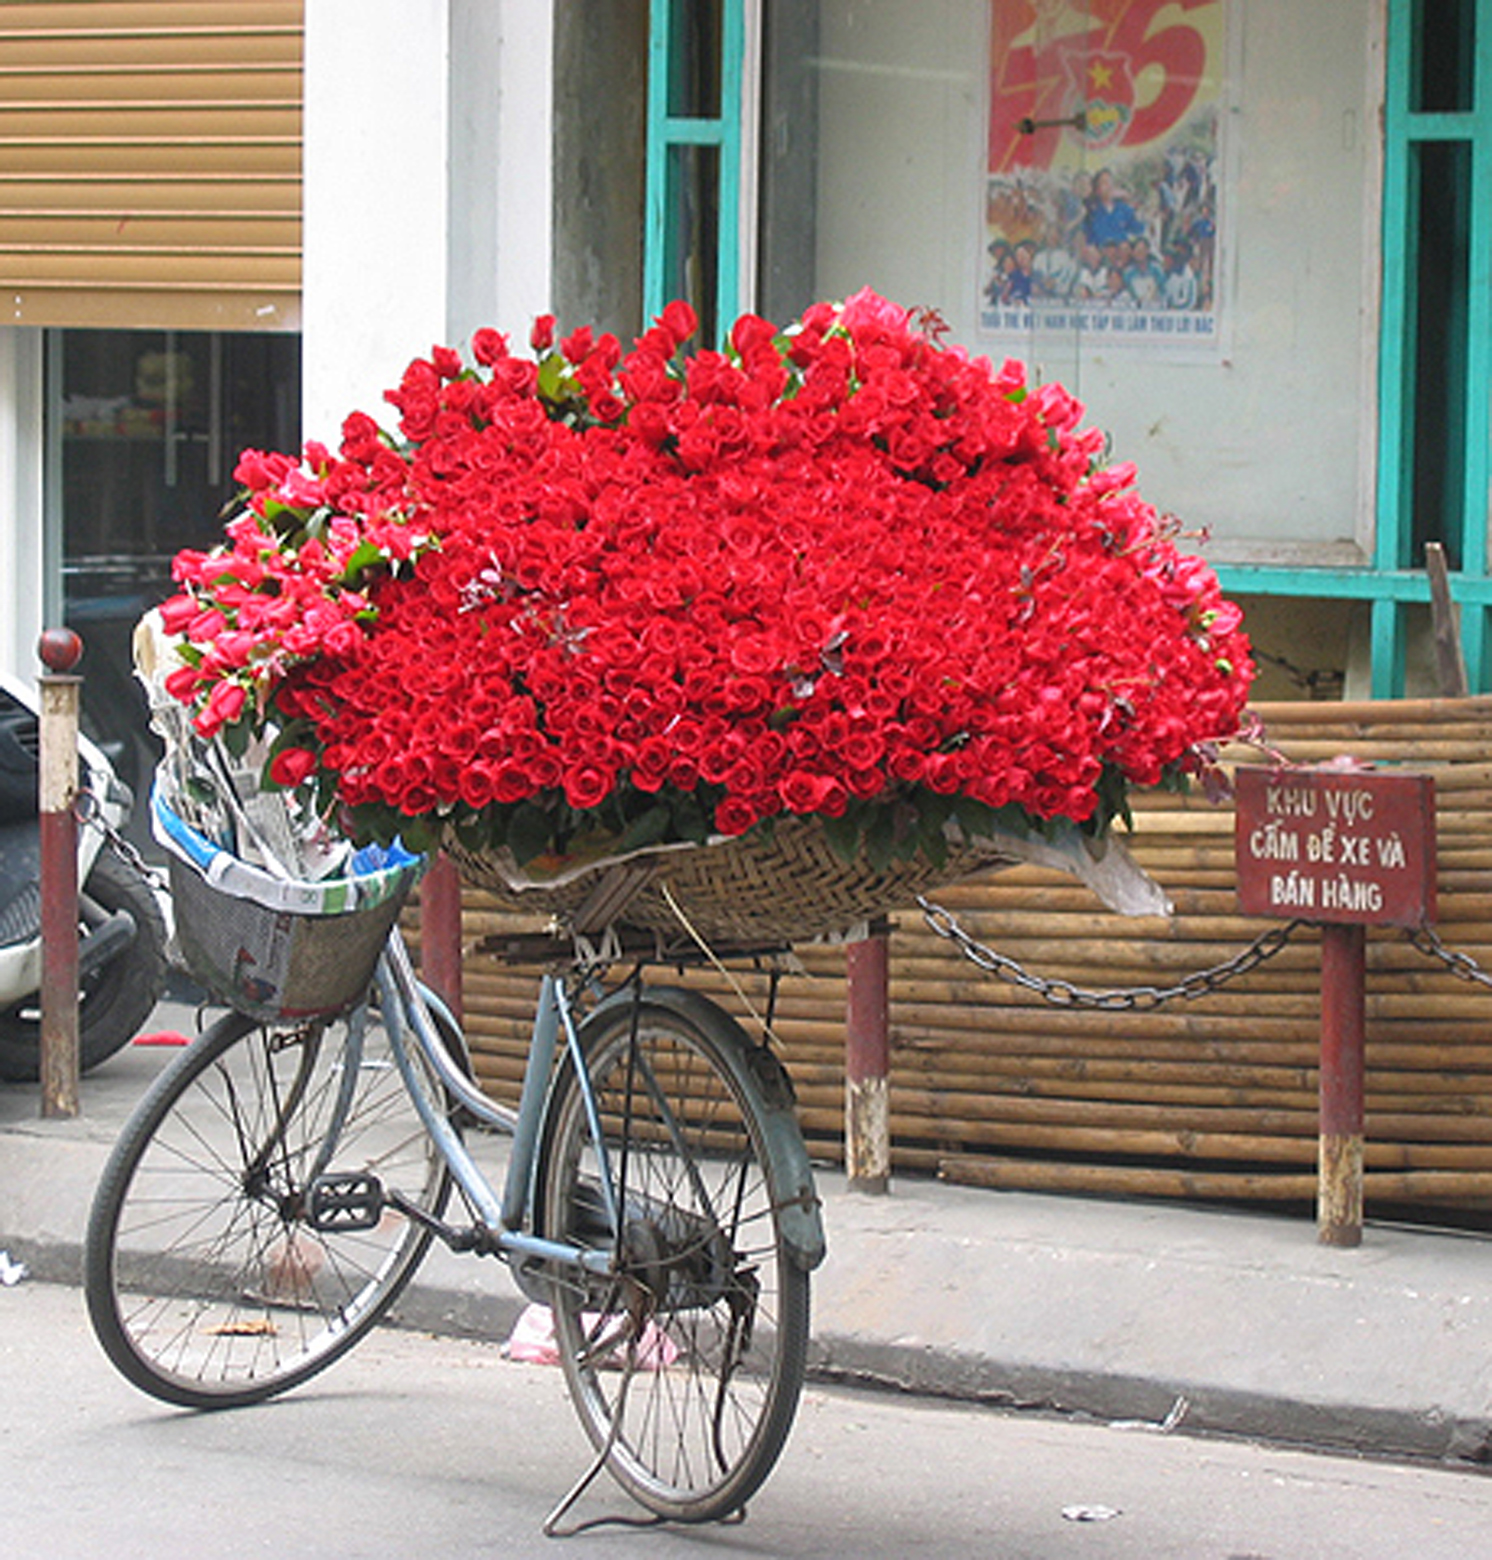 Hanoi Rose bike.jpg